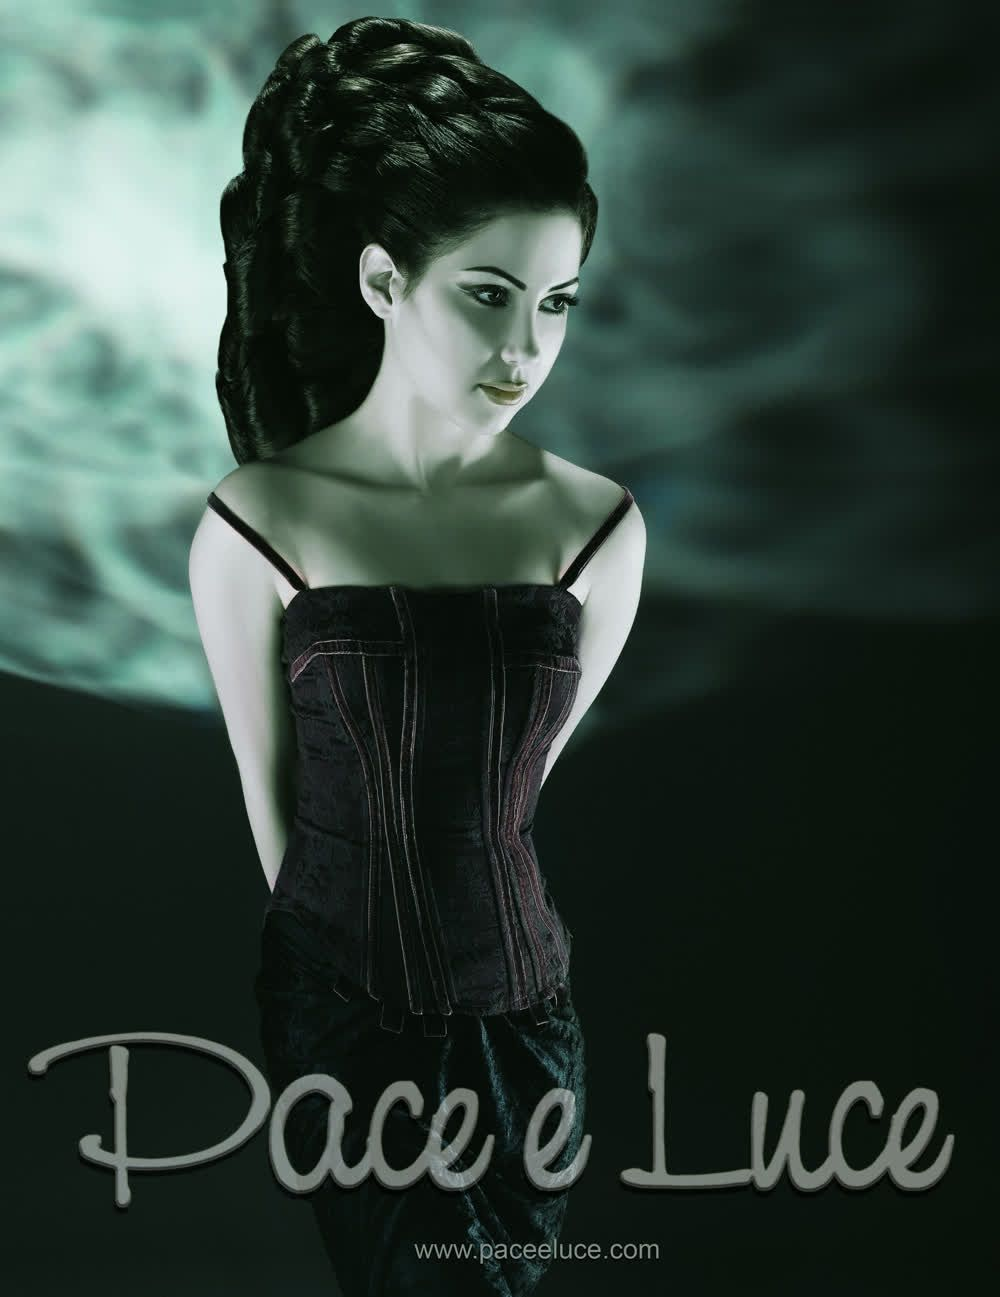 title: Pace Luce